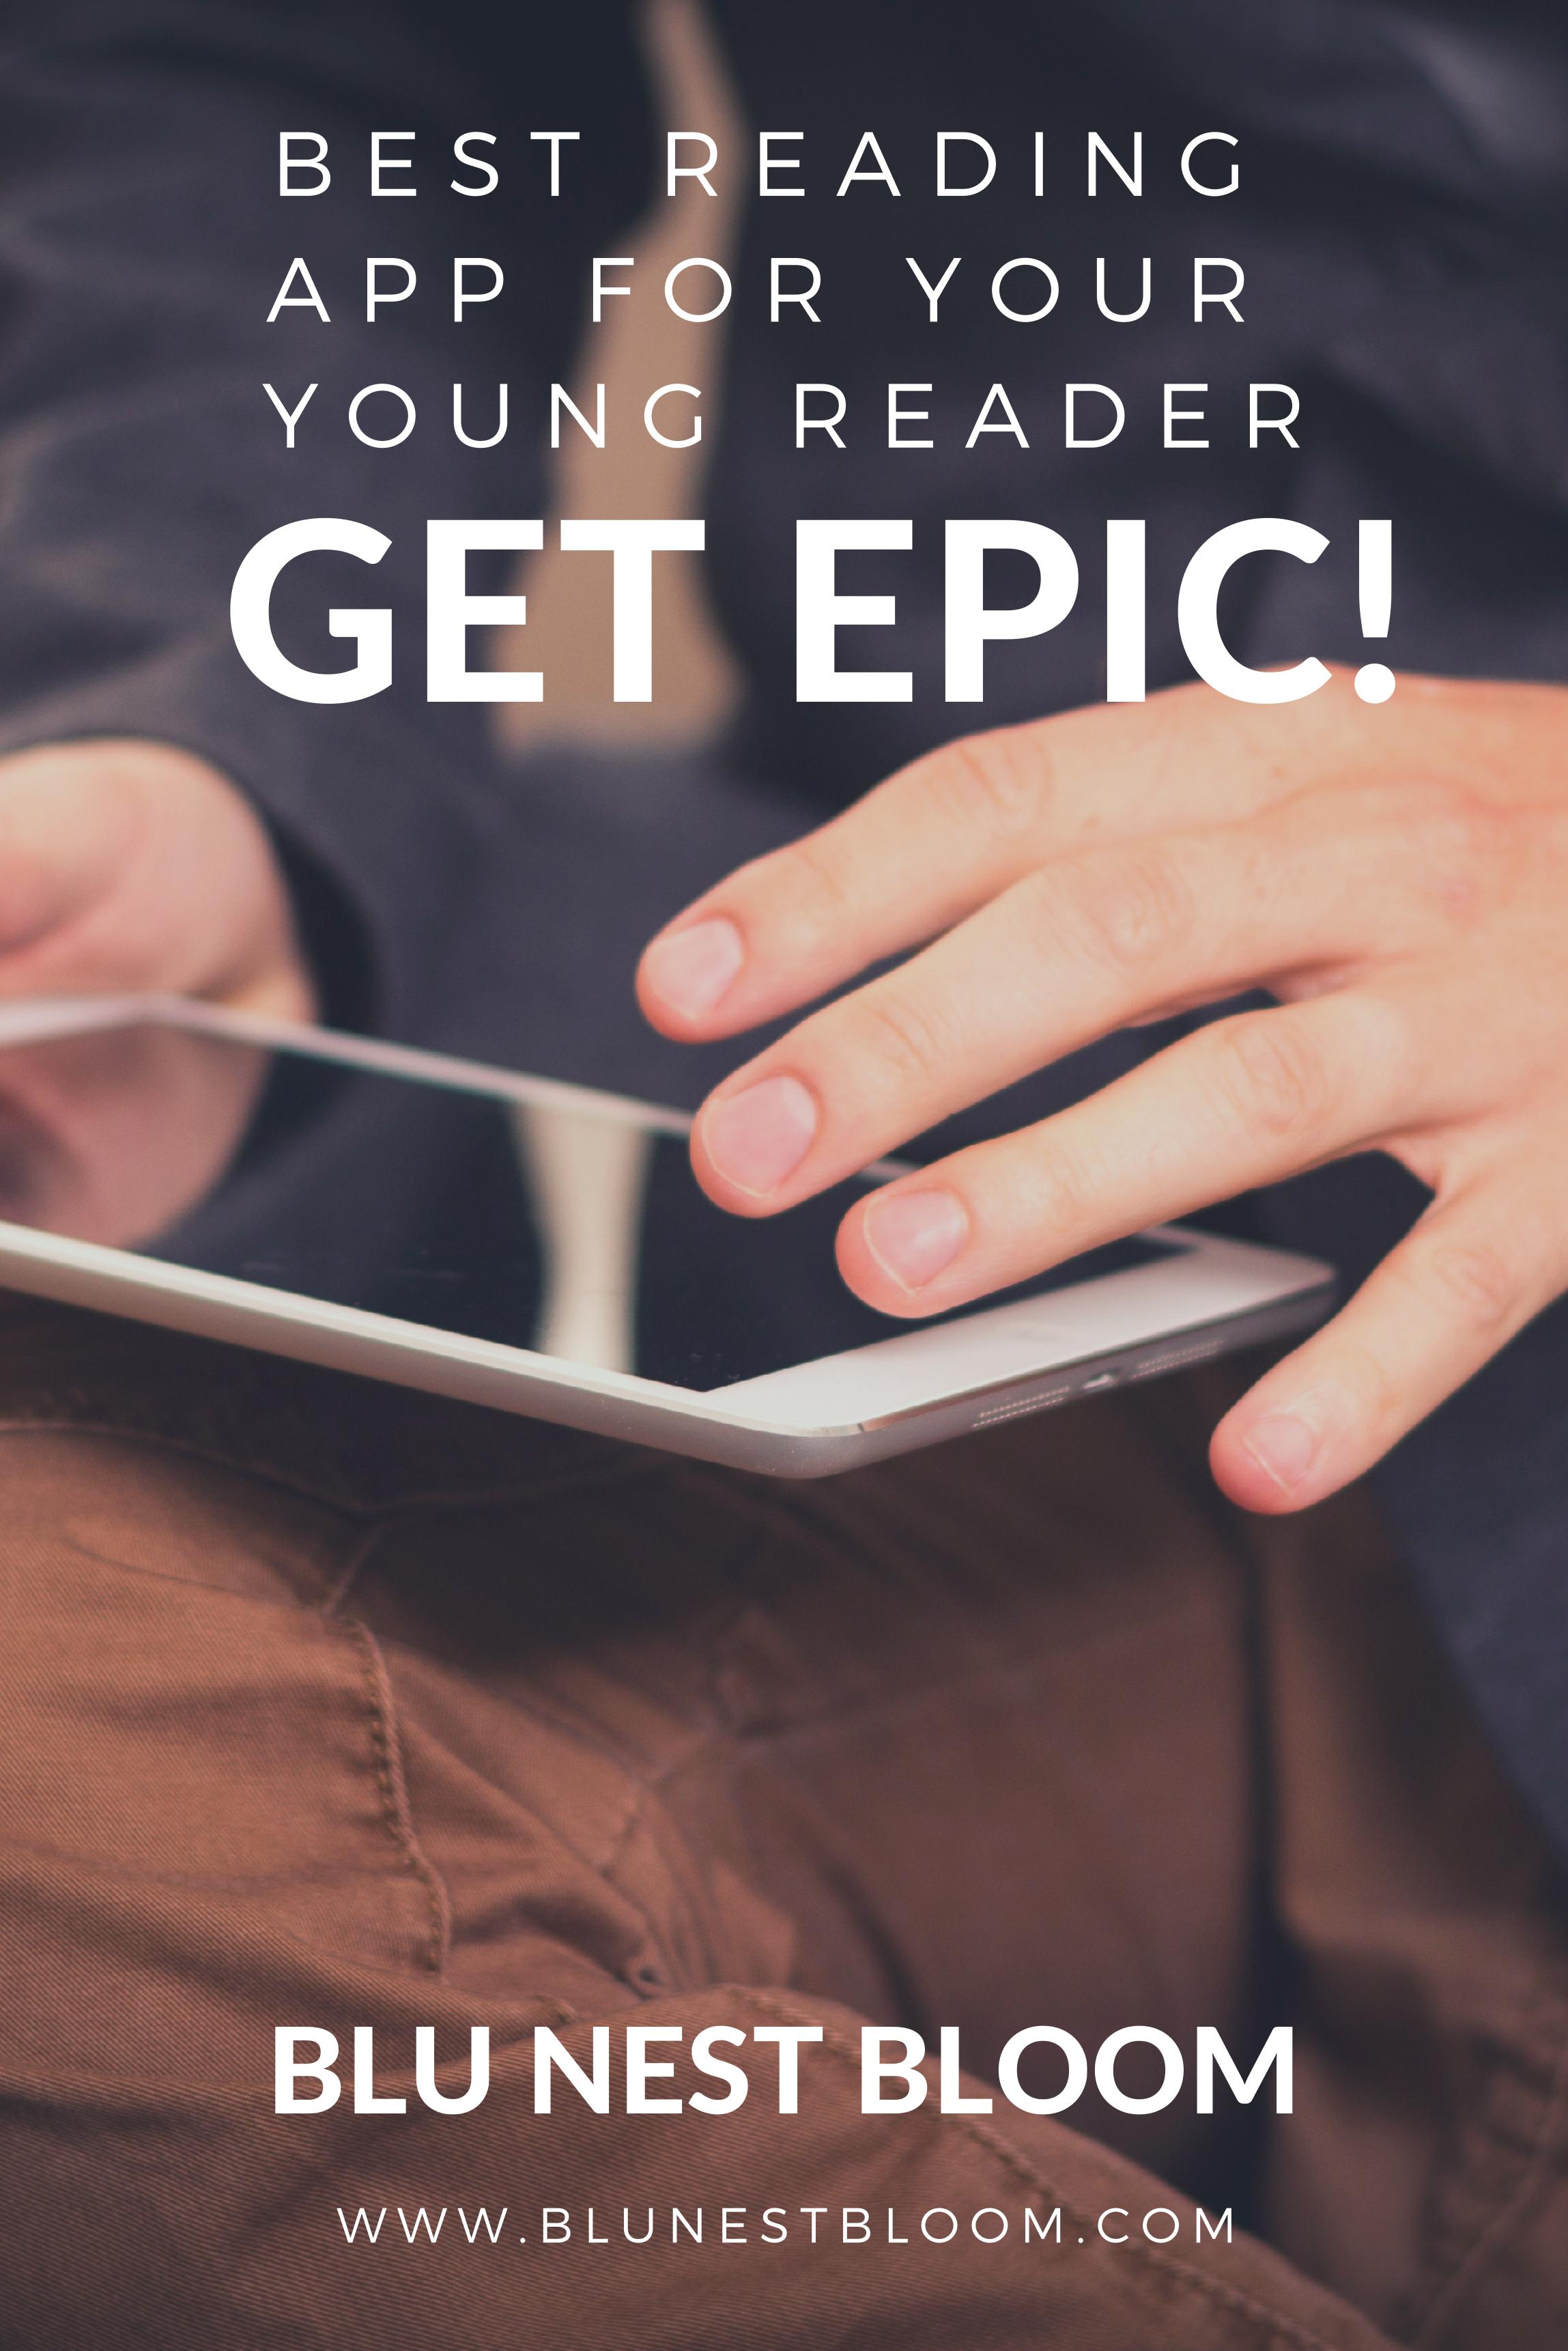 Best Reading App For Young Reader